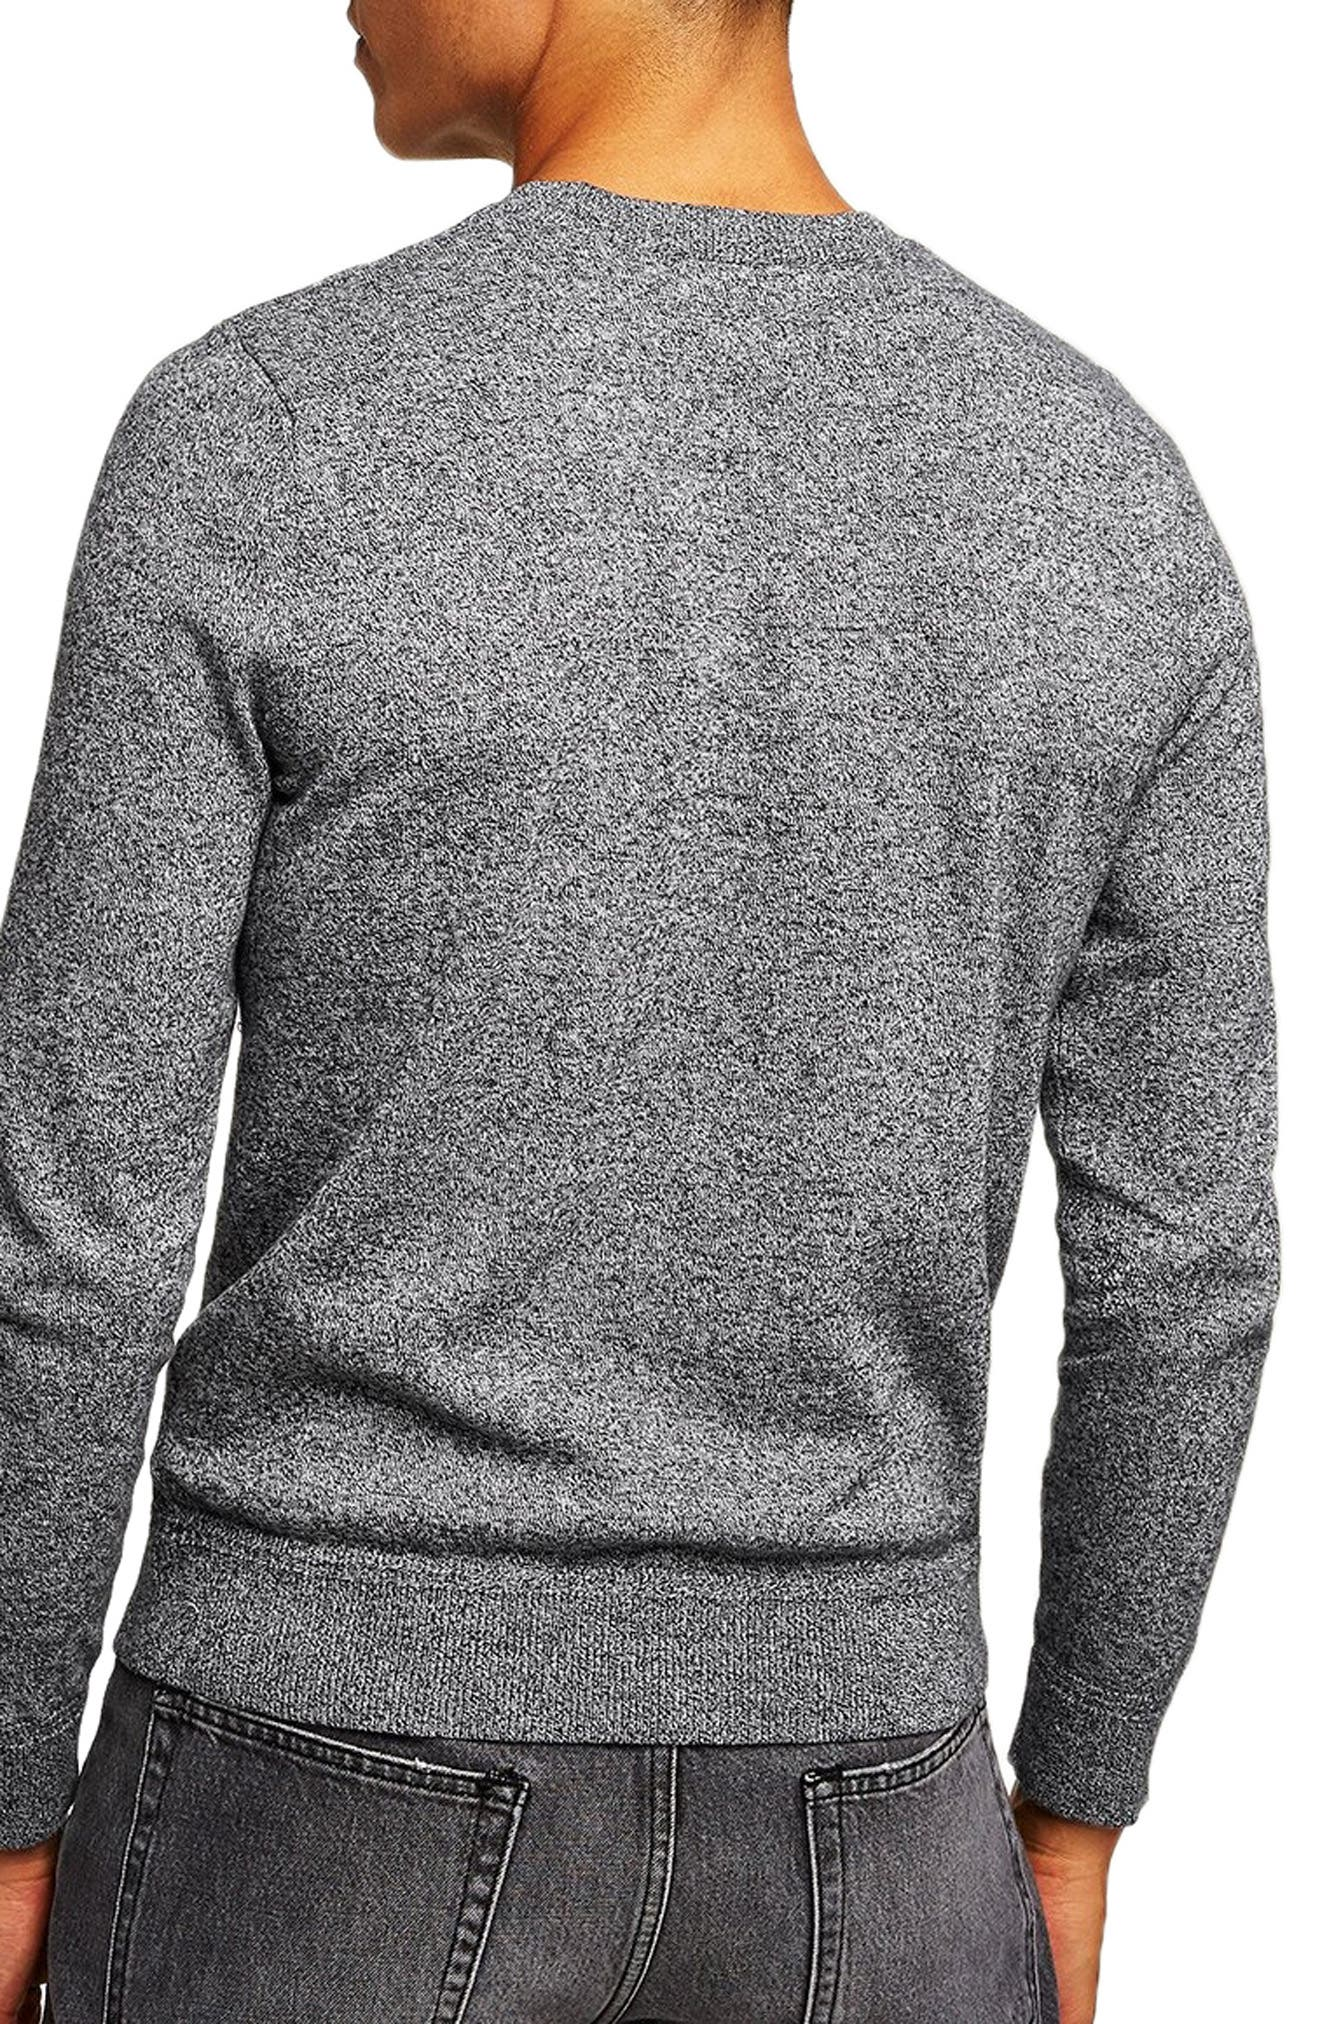 Classic Fit Twist Crewneck Sweater,                             Alternate thumbnail 2, color,                             020